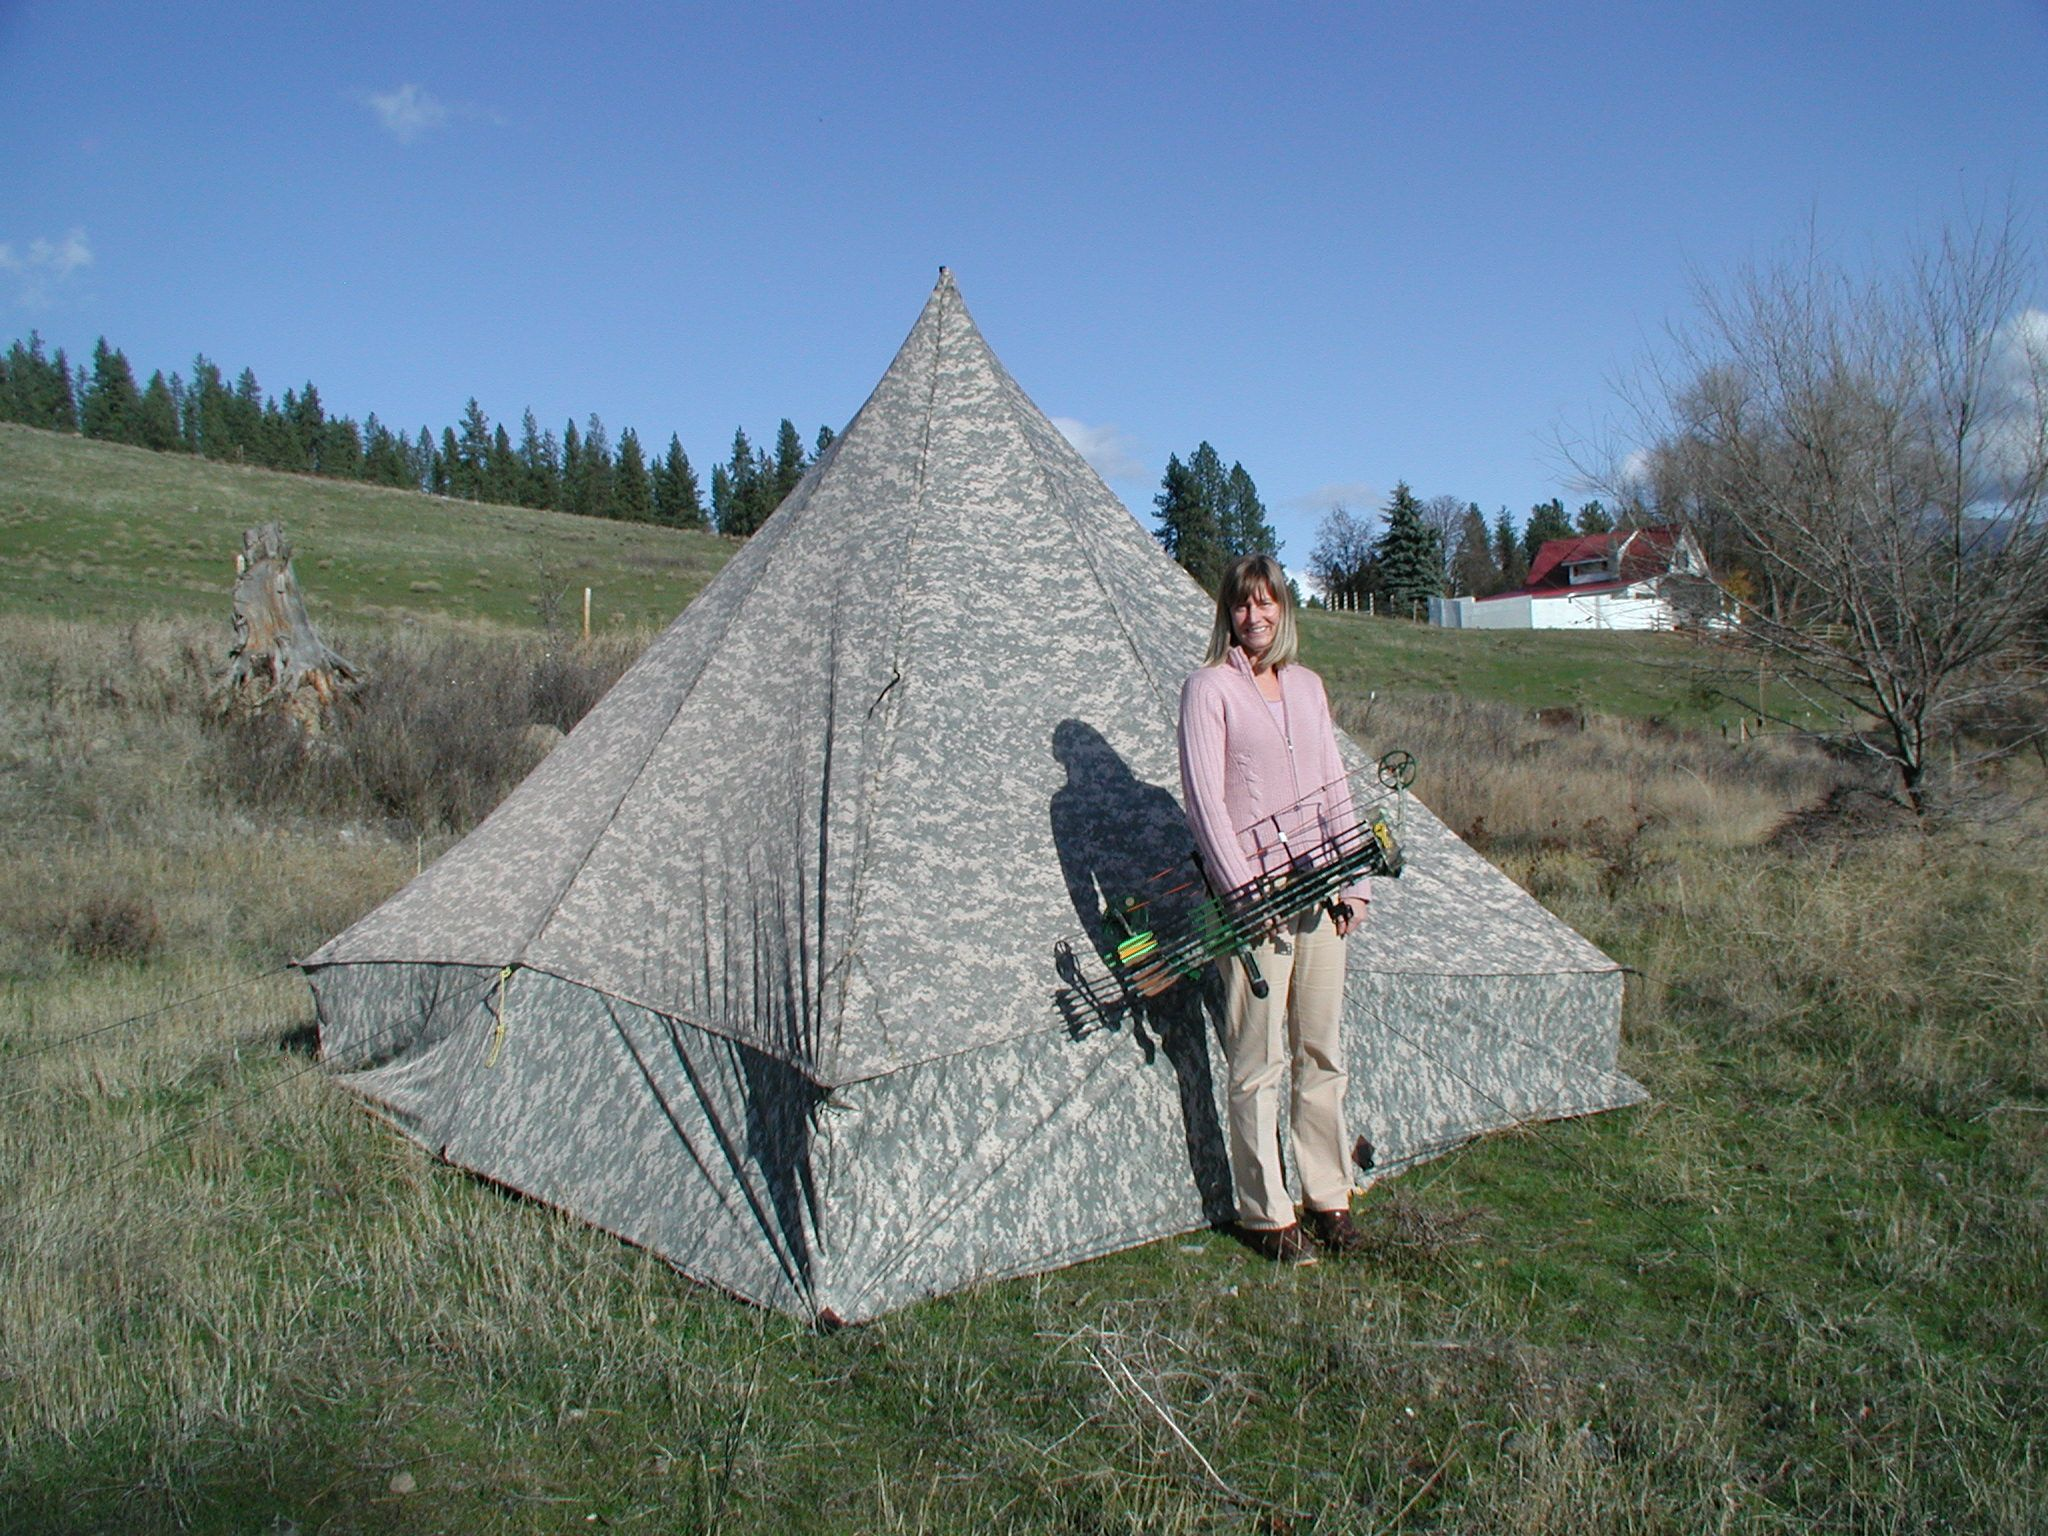 Custom 11x11 pyramid with sidewalls in universal camo2